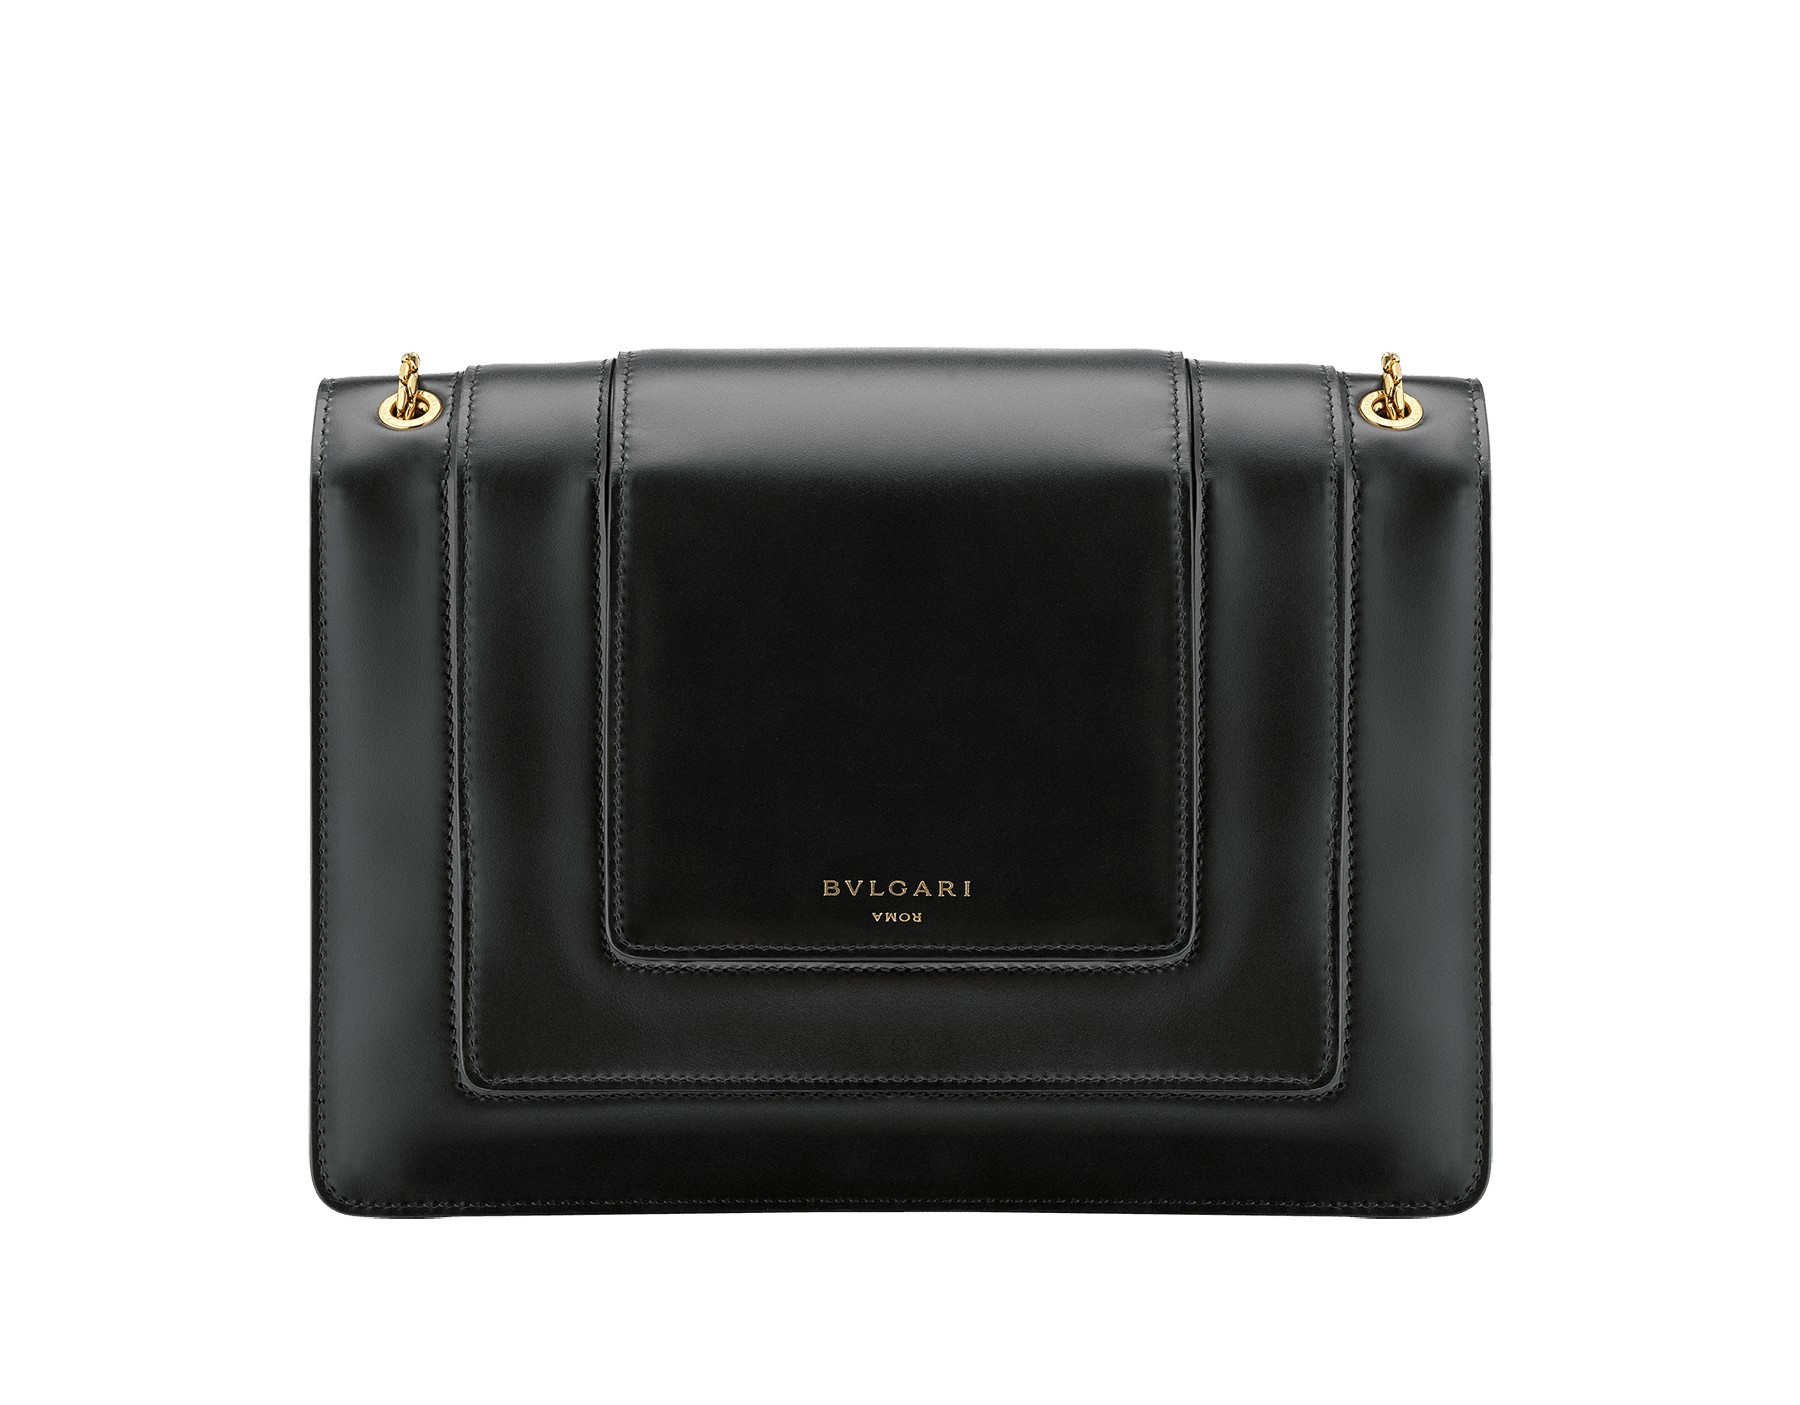 Alexander Wang x Bvlgari Triplette shoulder bag in smooth black calf leather. New triple Serpenti head closure in antique gold plated brass with tempting red enamel eyes. Limited edition. SFW-001-1003M image 3